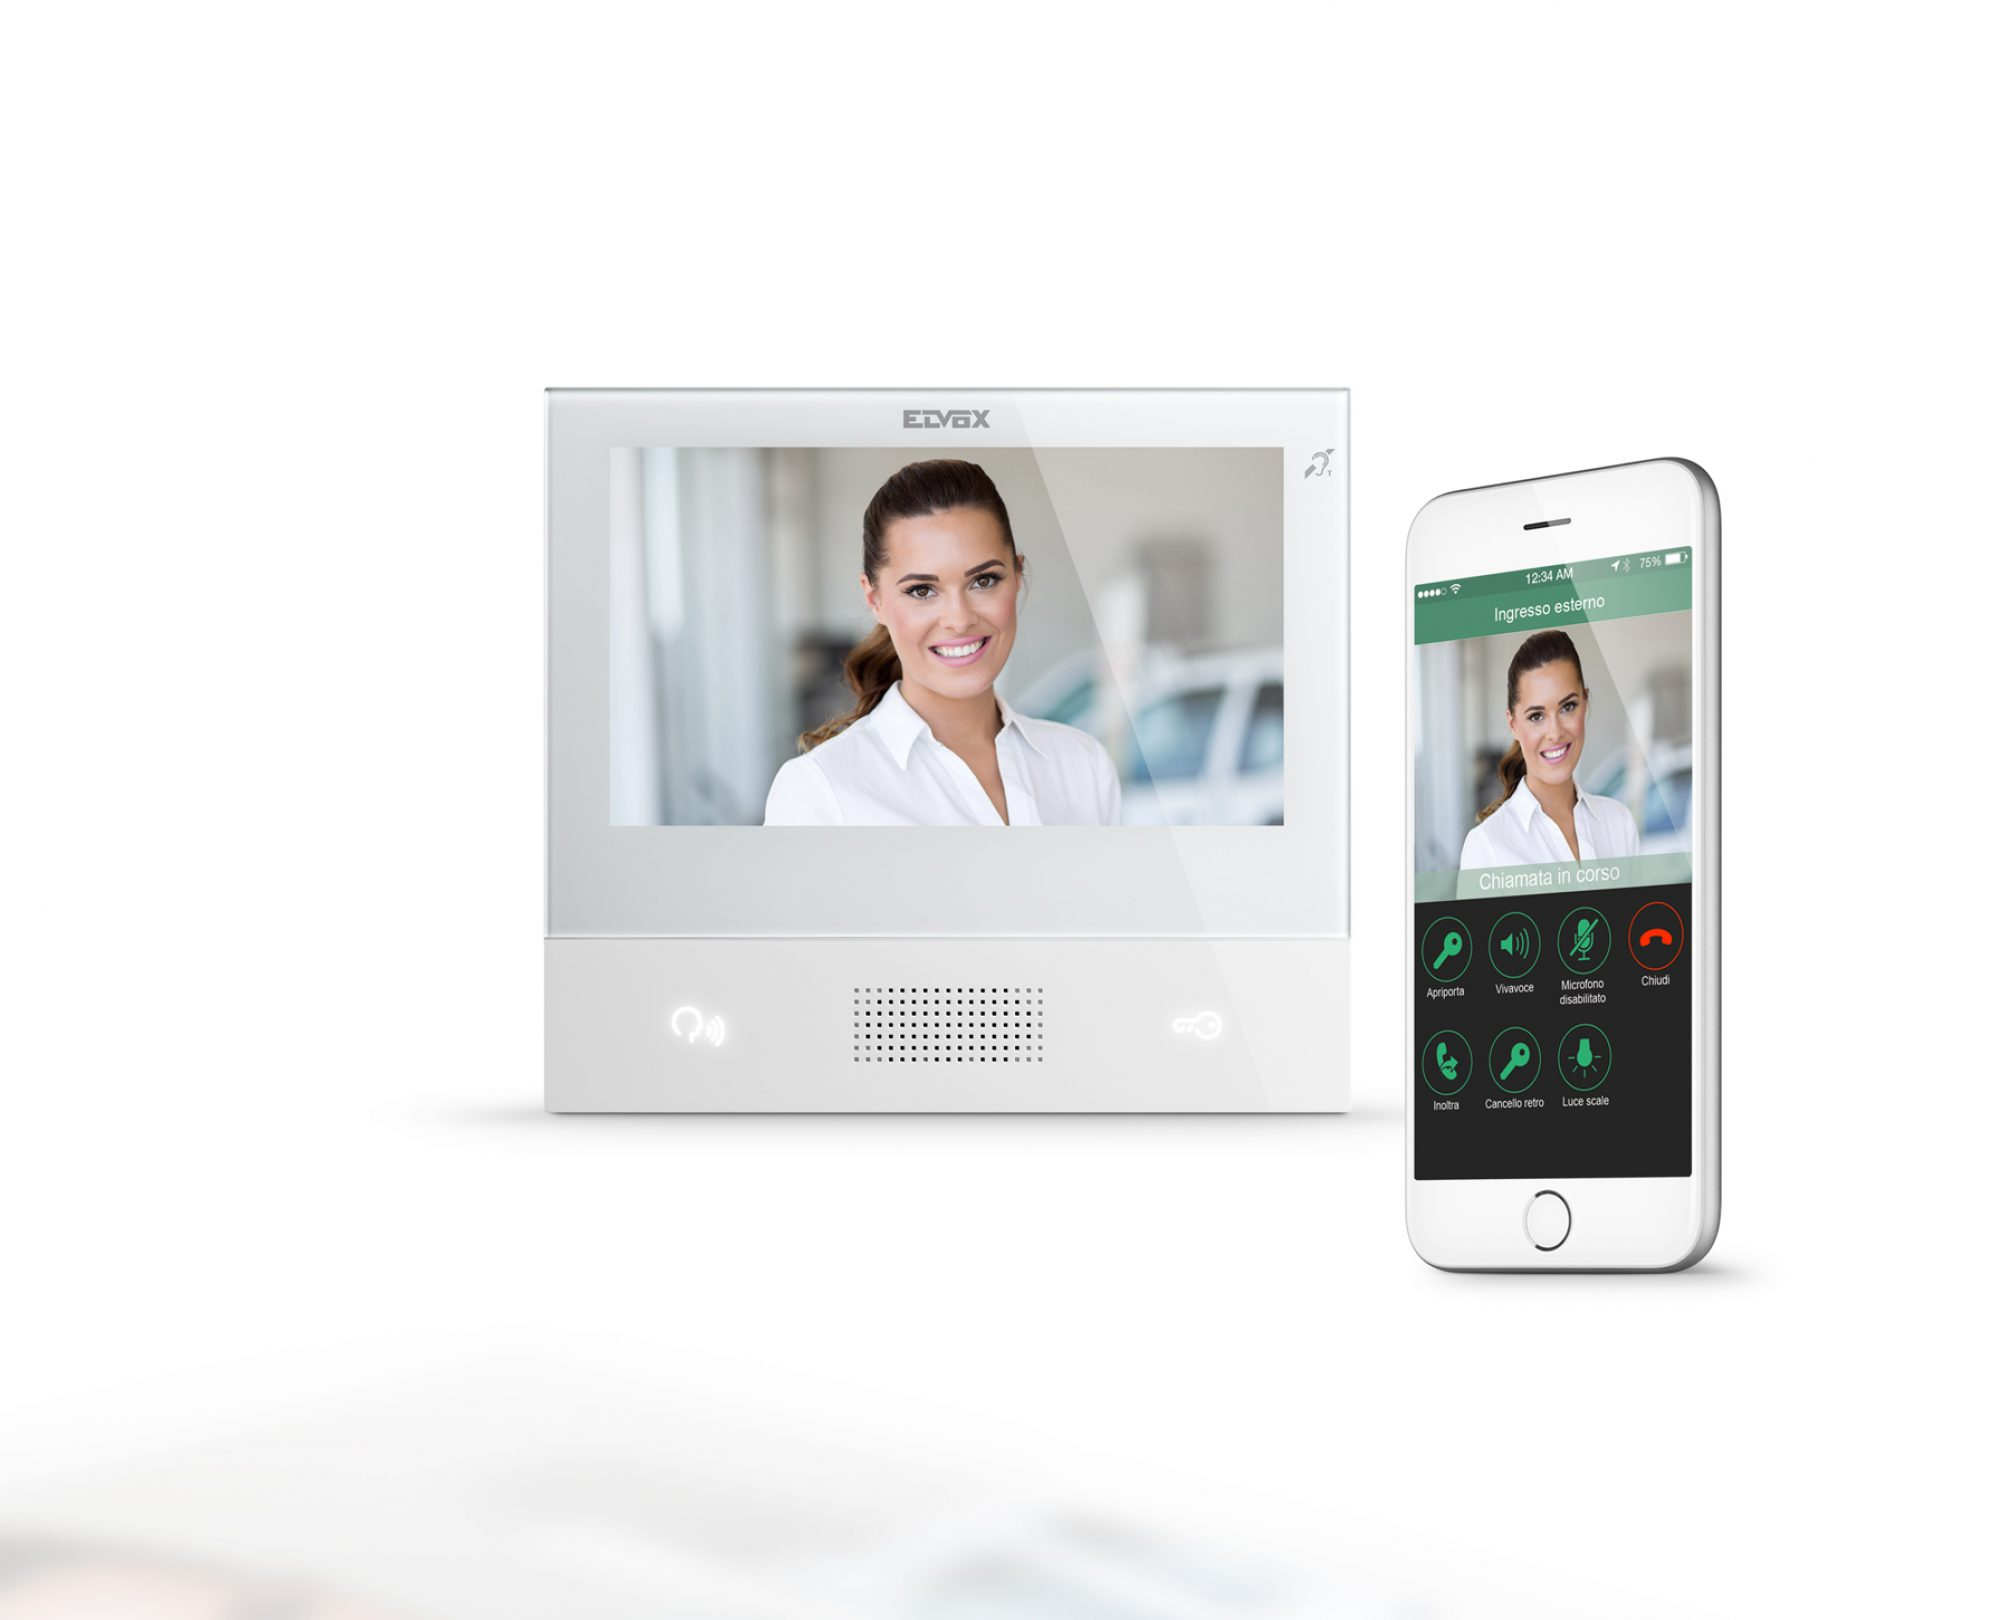 Elvox Video Door by MIEG Corporation